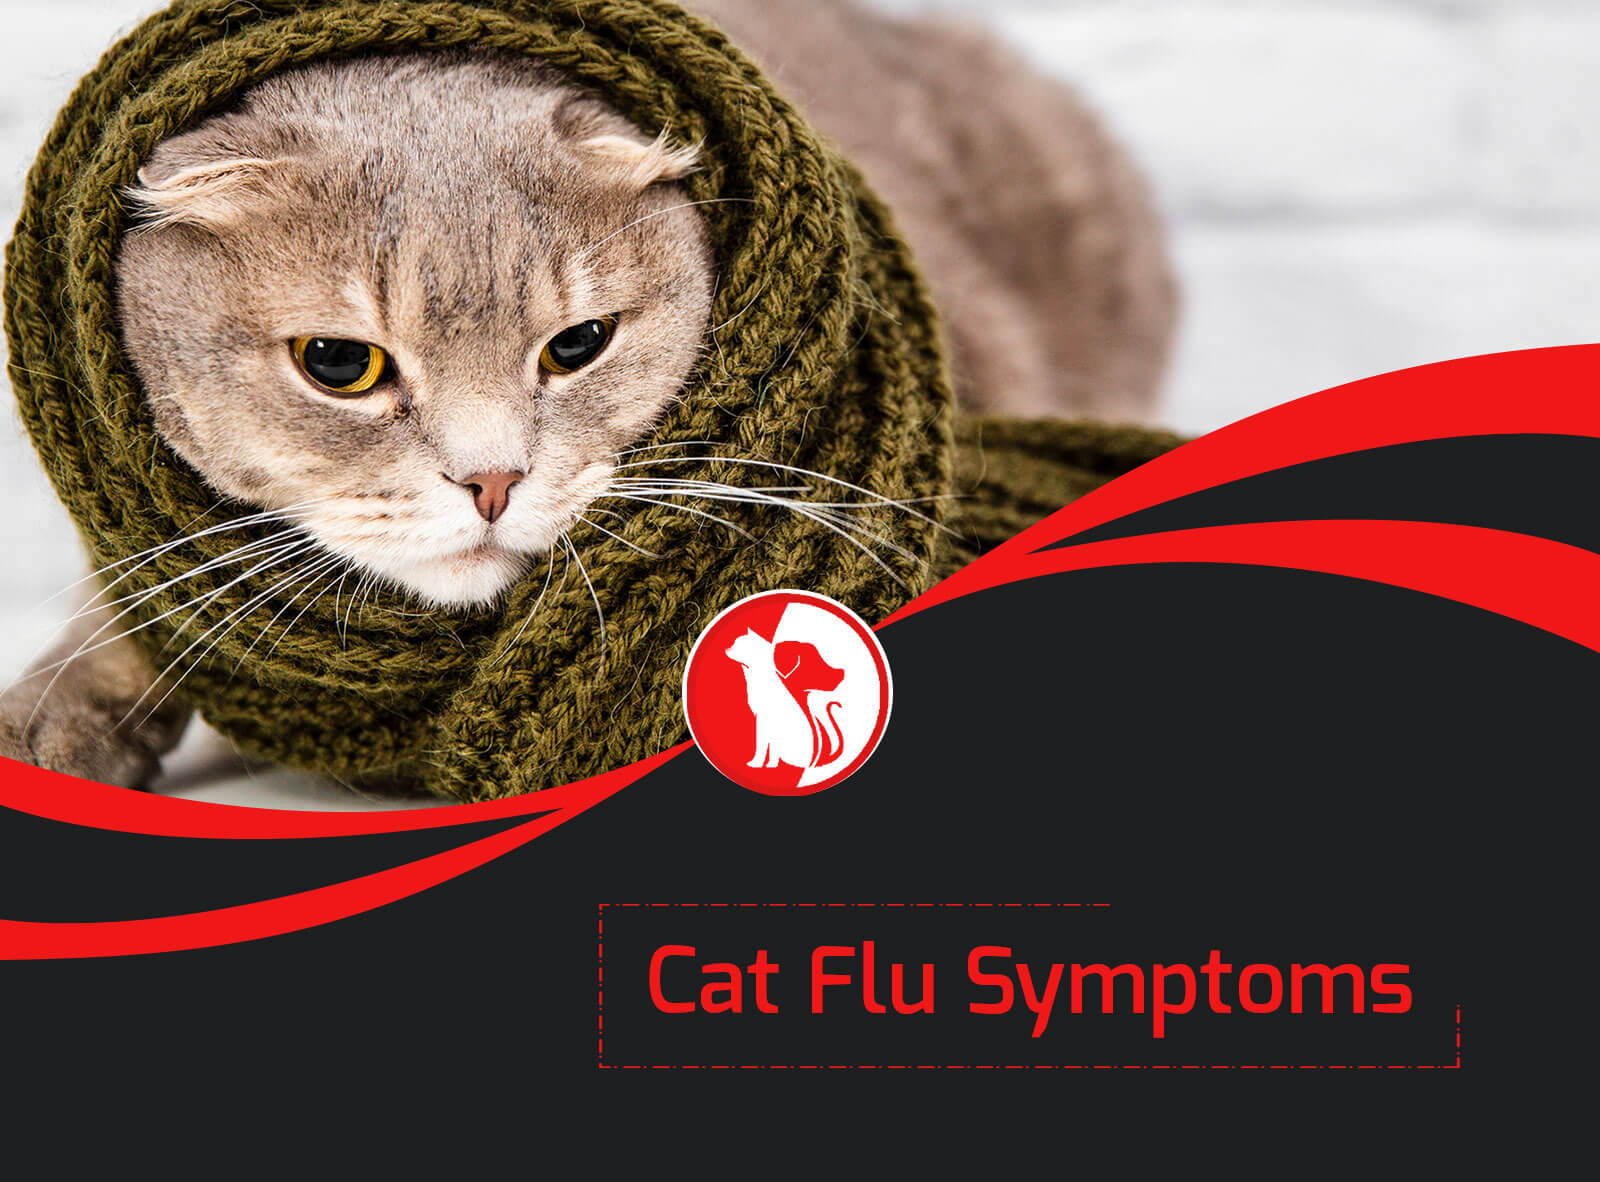 Cat Flu Symptoms: What to Look For?